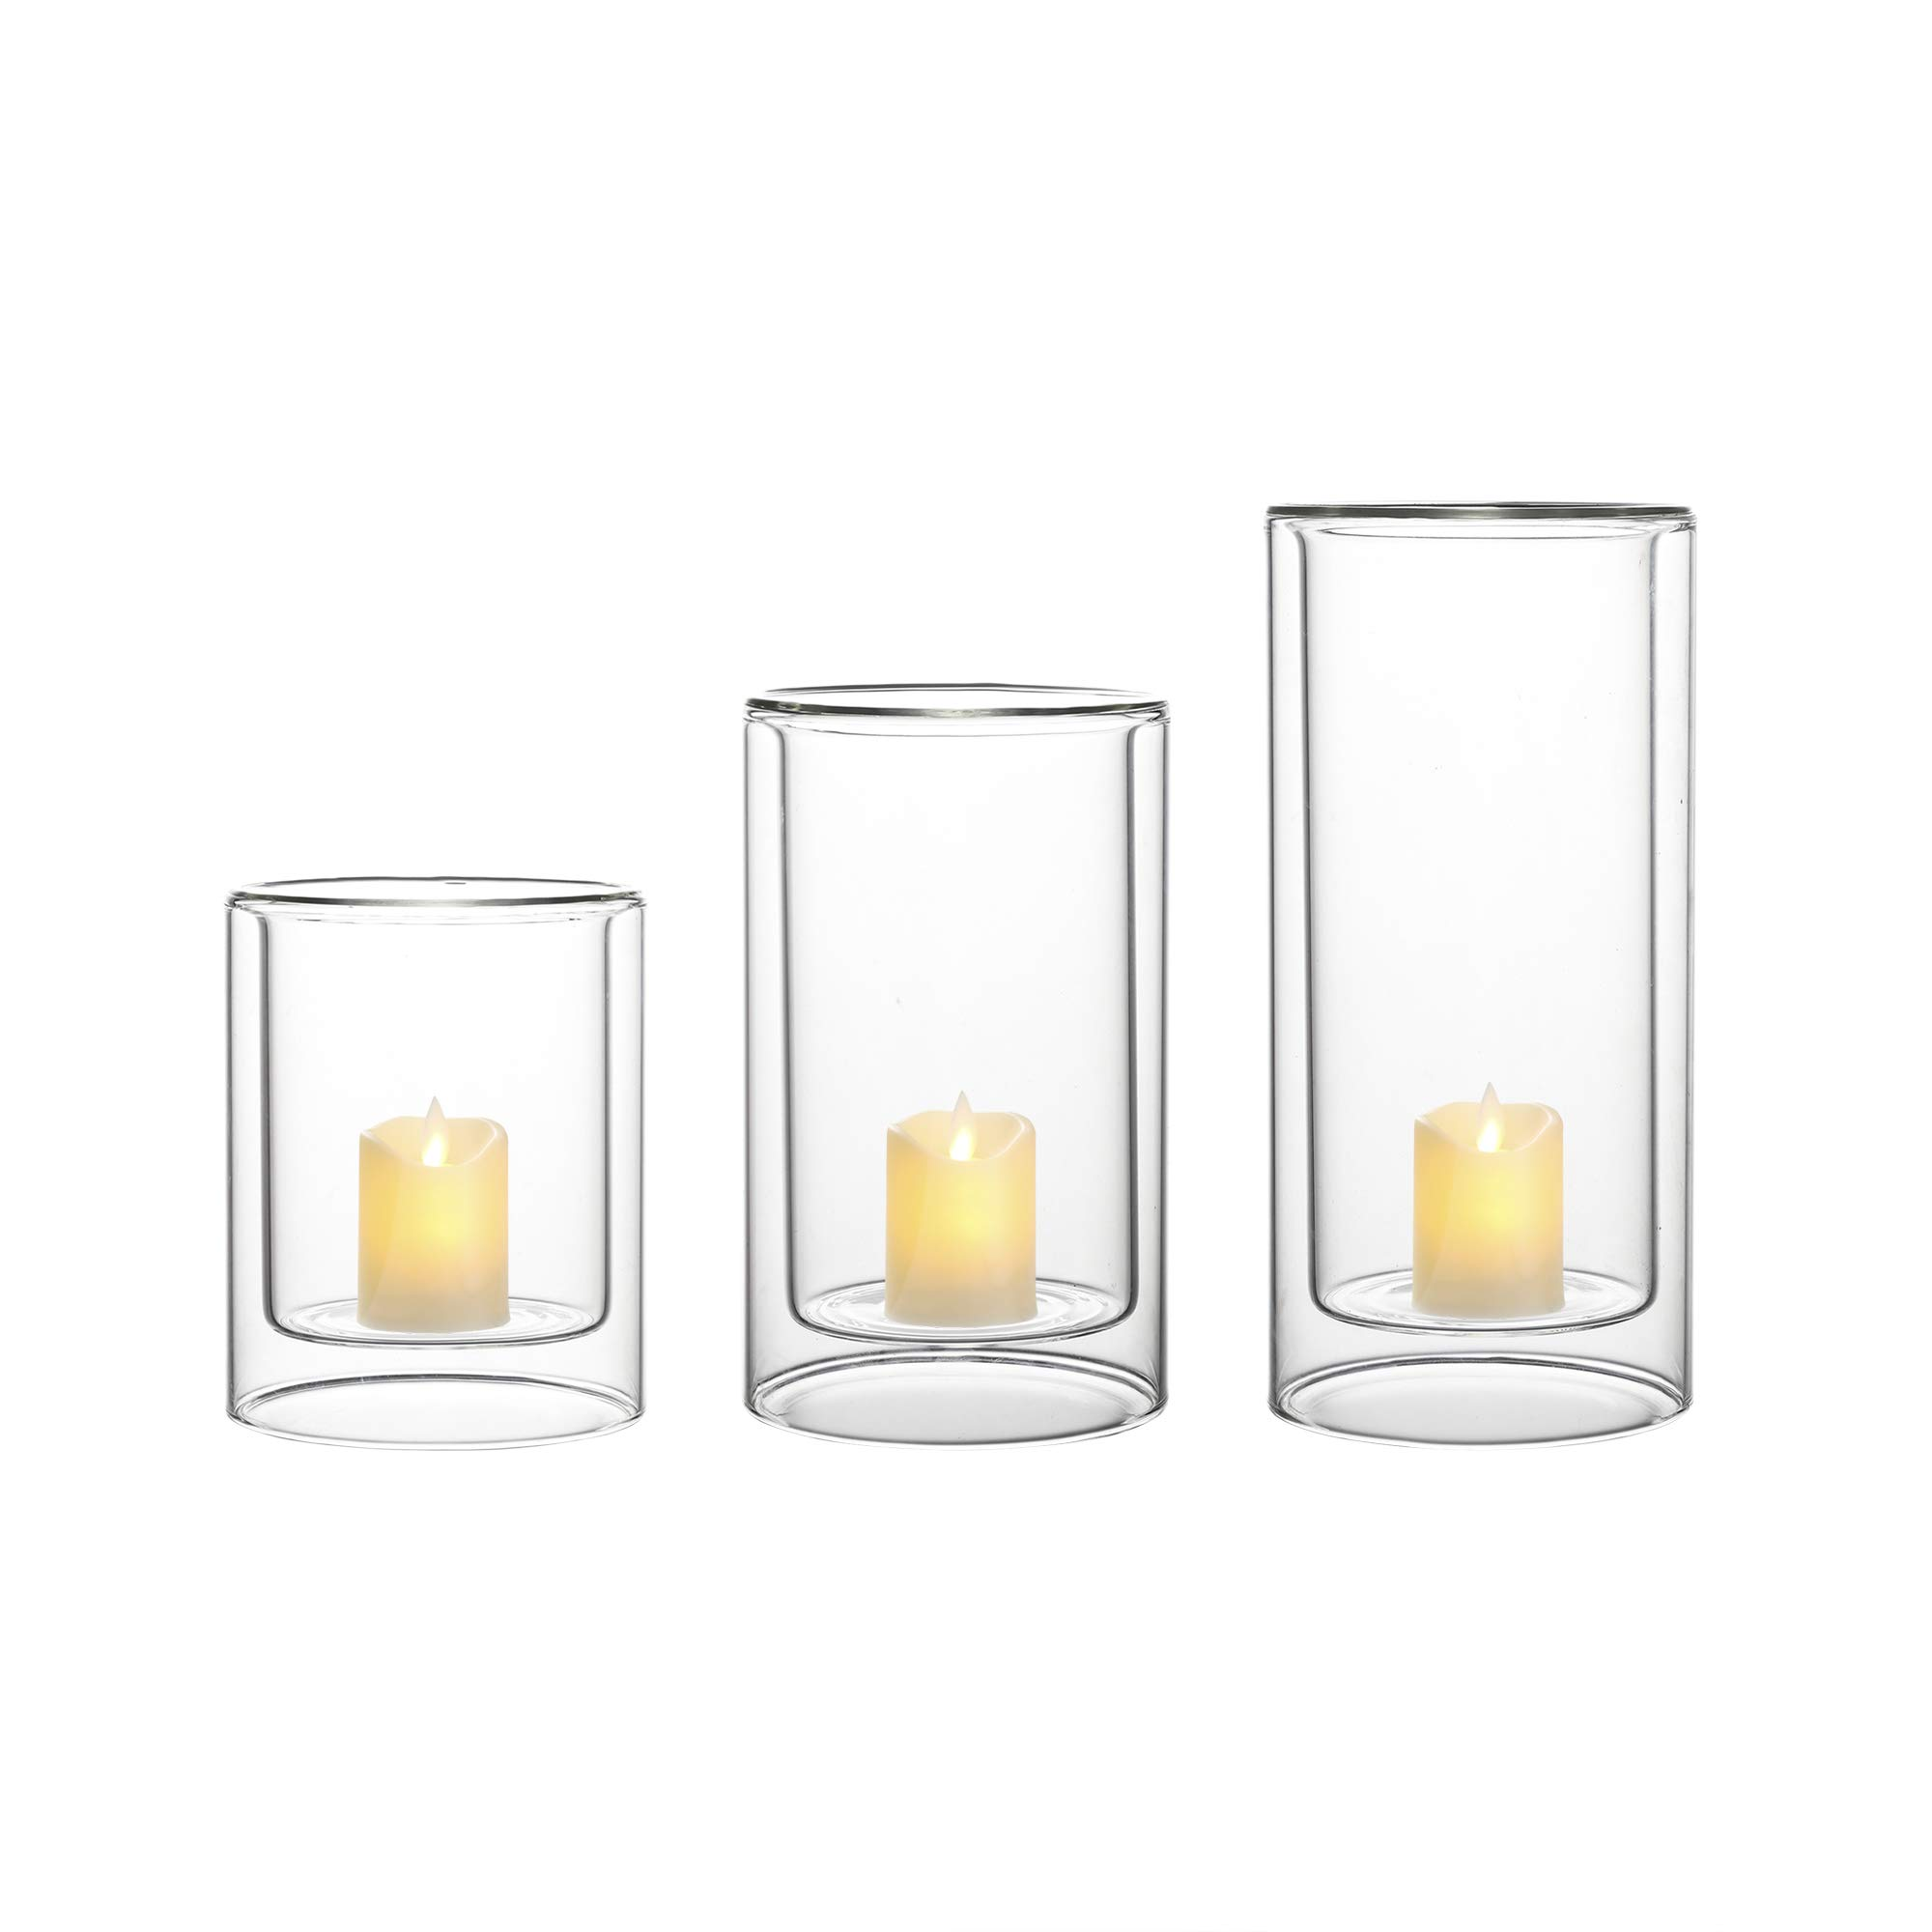 Whole Housewares Glass Candle Holder Double-Walled Glass Set of 3 H 5.9/7.9/9.8 inch Simple Design Multiple Use as a Vase, Candle Holder, Hurricane Lantern or Succulent Terrarium (Dia 4.7'')